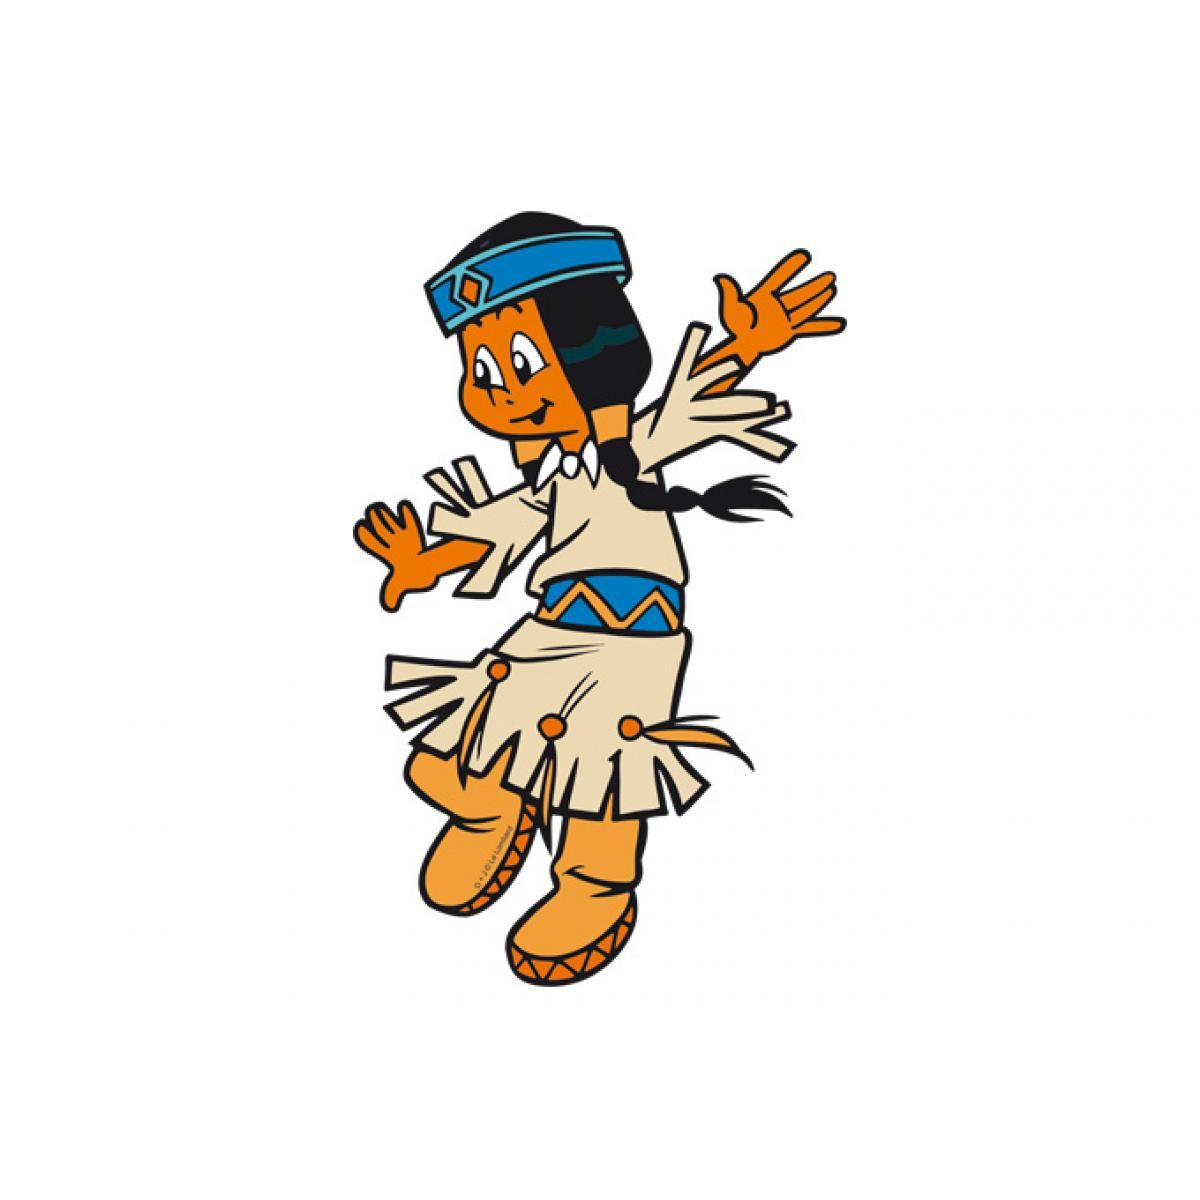 Wandsticker Yakari Regenbogen Tanzt Fasching Natives Cartoon